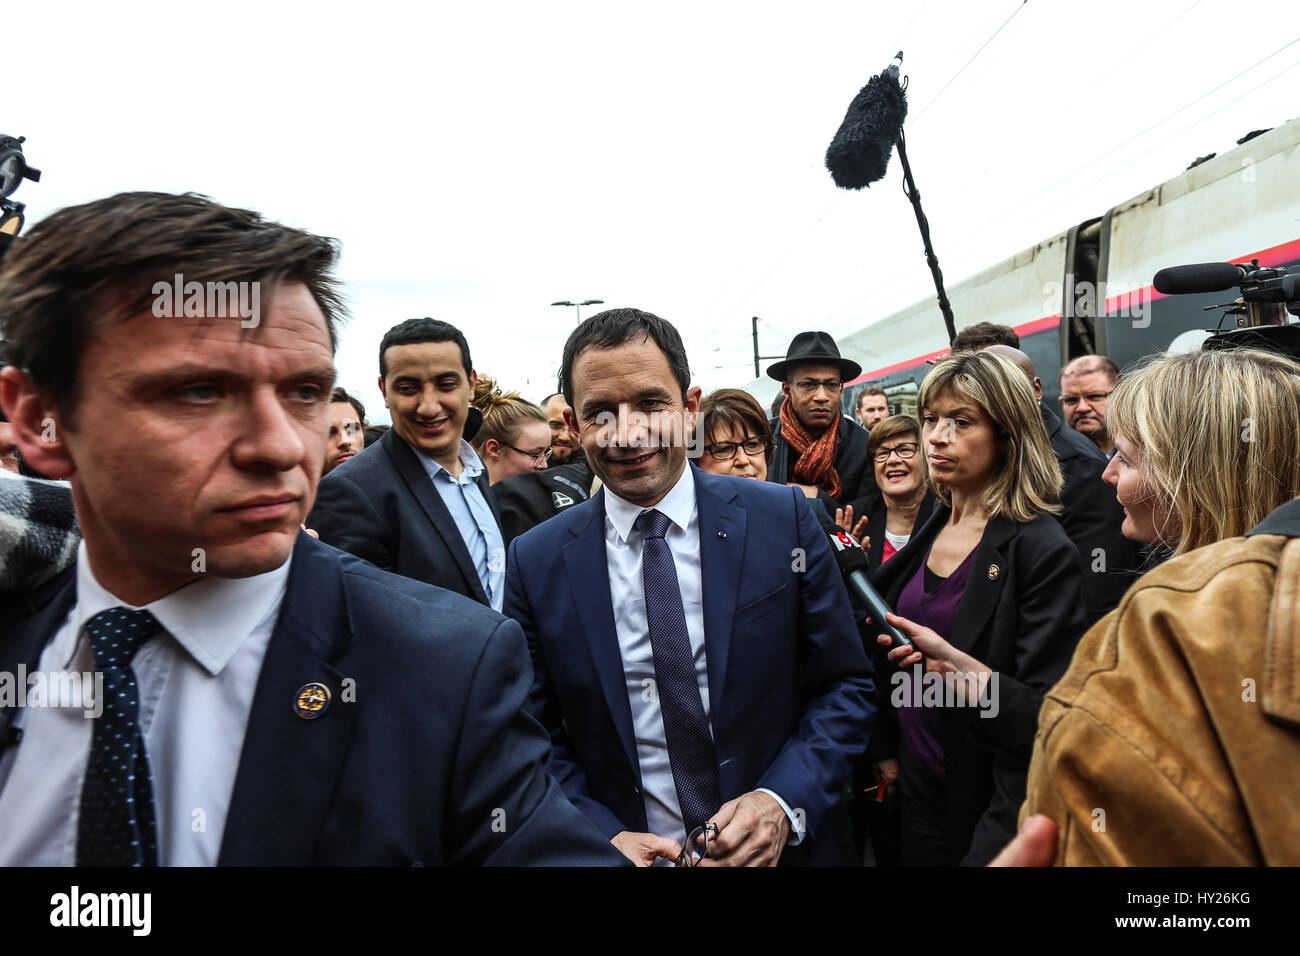 Benoit Hamon and Martine Aubry in campaign in Douai. -  29/03/2017  -  France / Nord-Pas-de-Calais  -  Benoit Hamon, - Stock Image